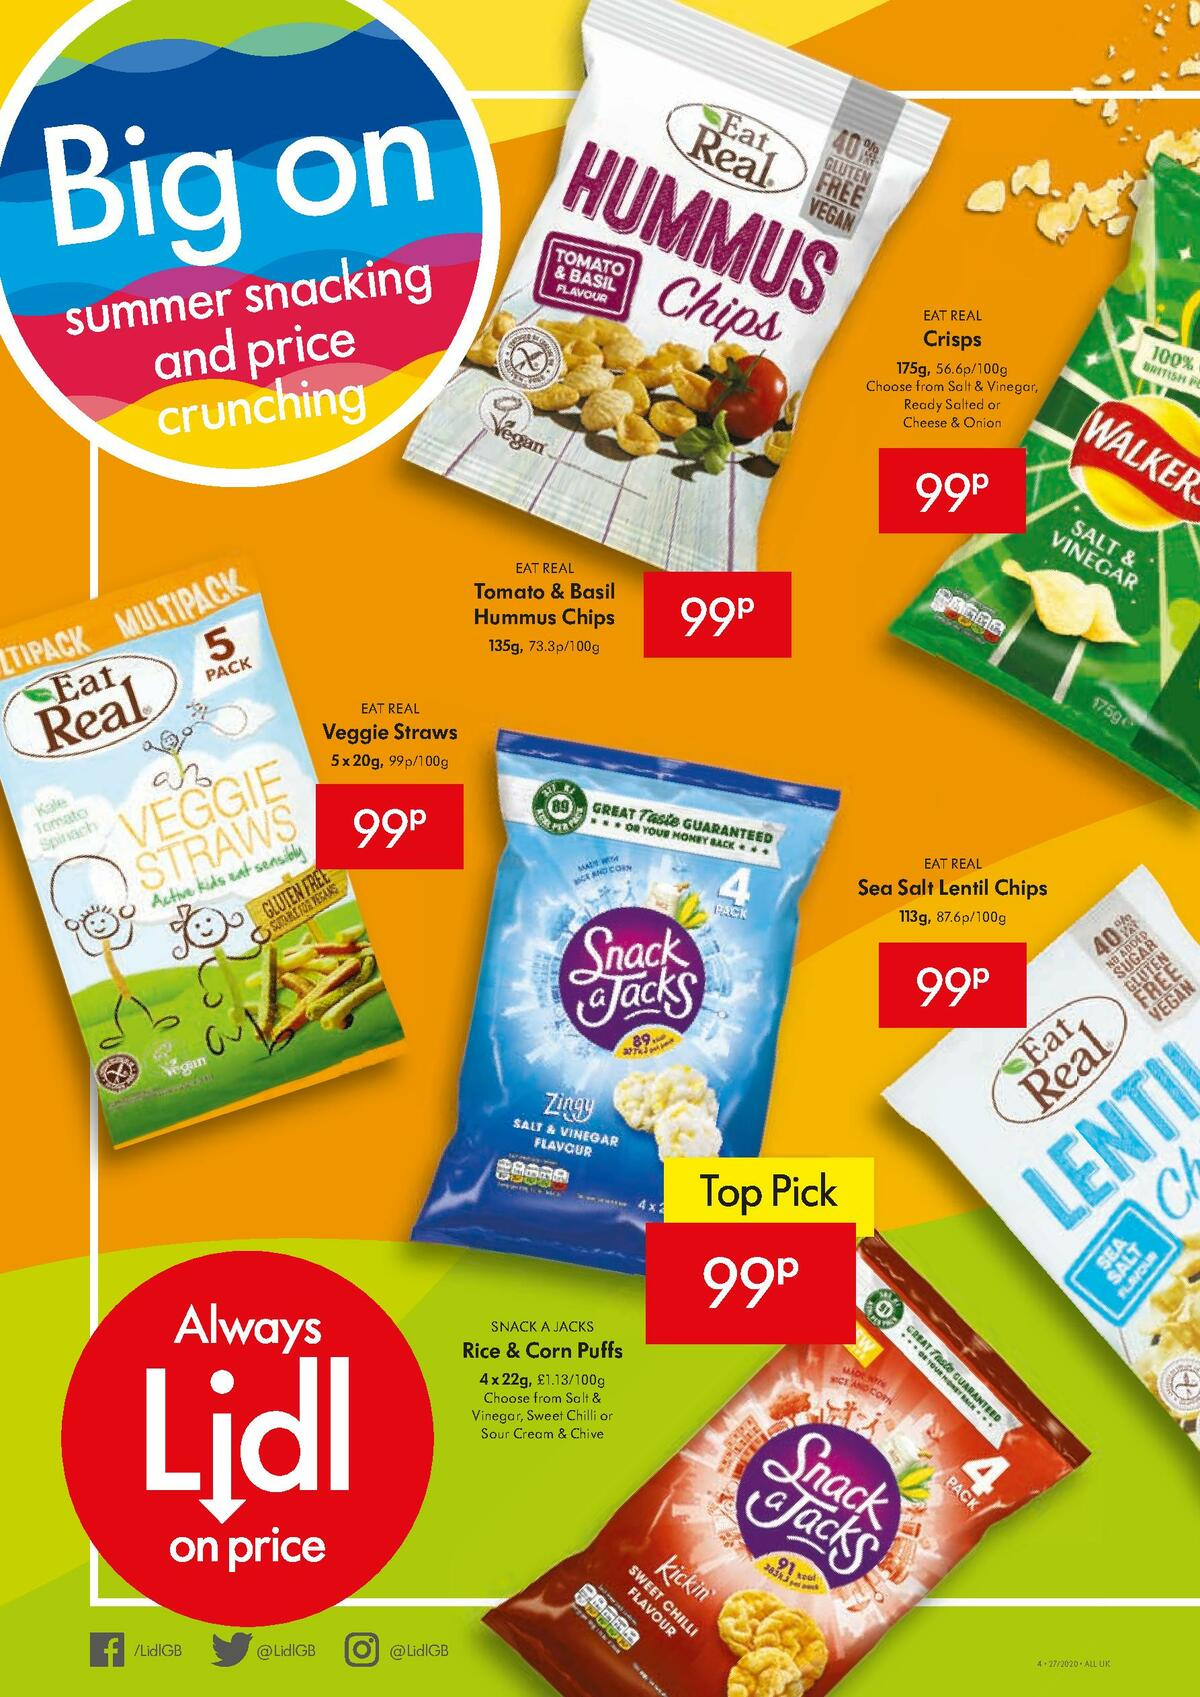 LIDL Offers from July 2